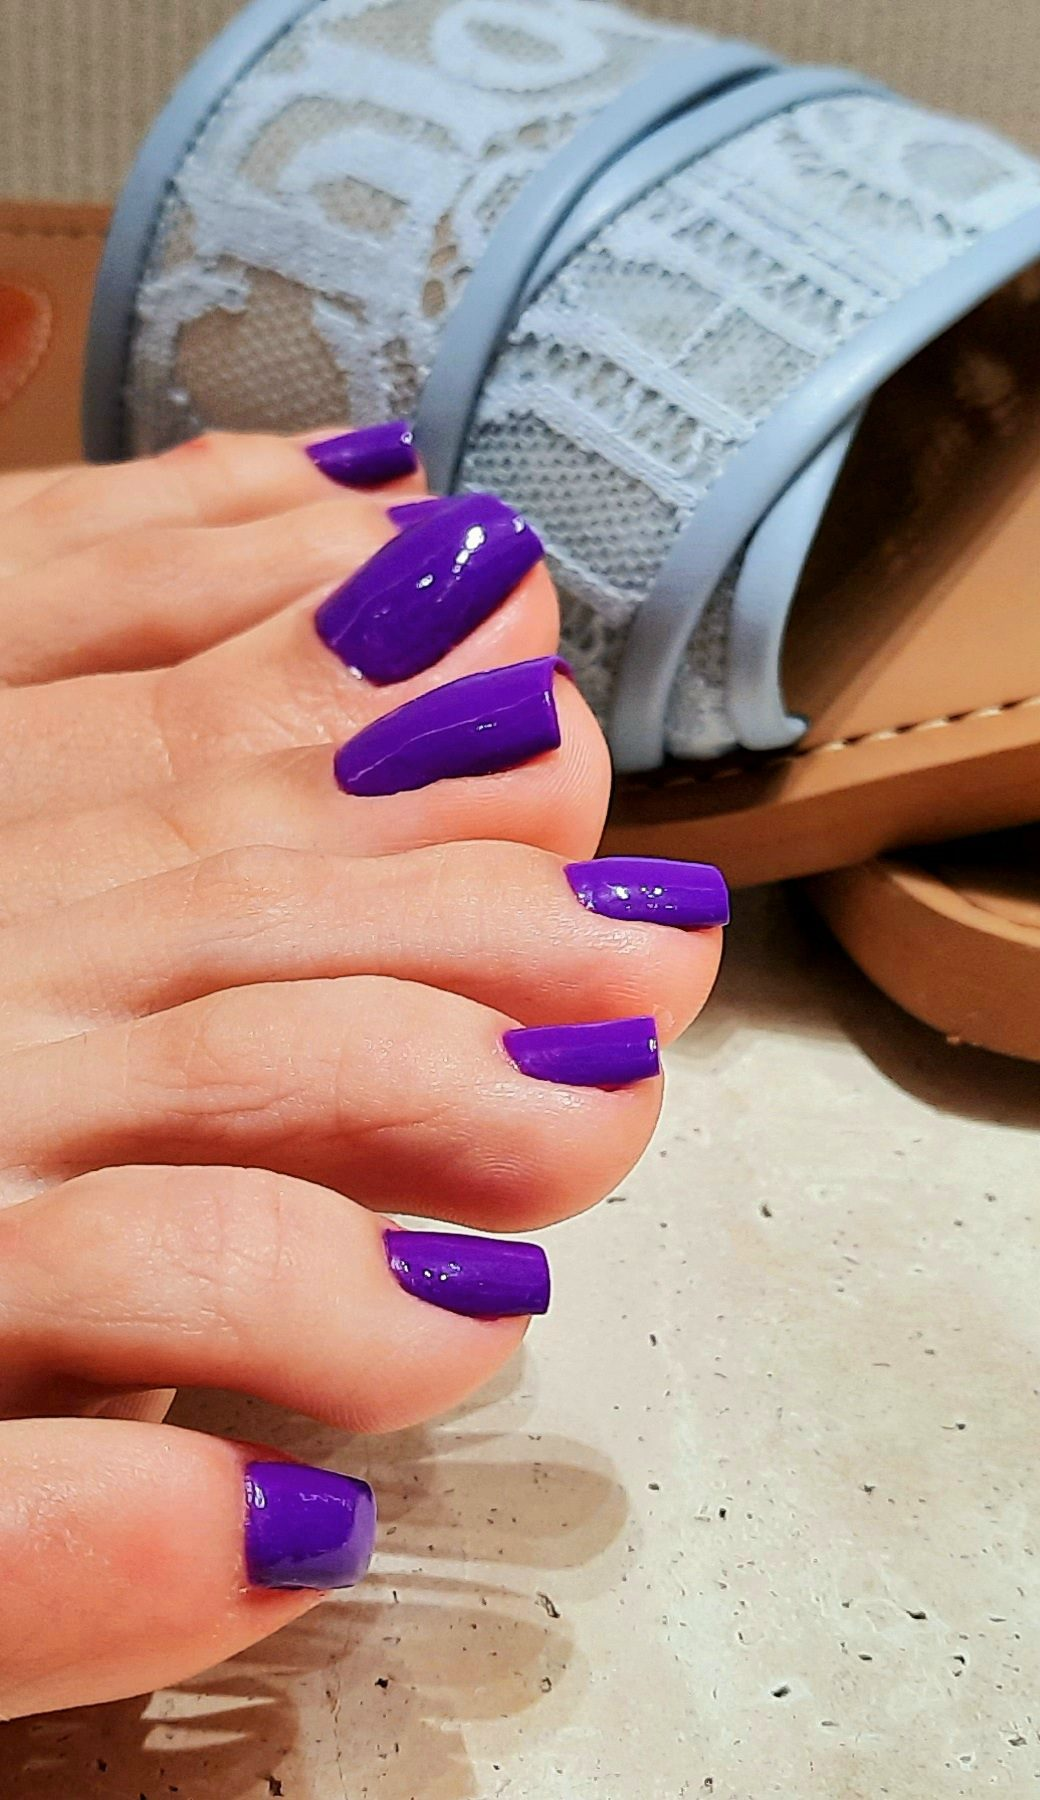 Toes of two feet with purple nail polish and in background baby blue Chloe flat sandals